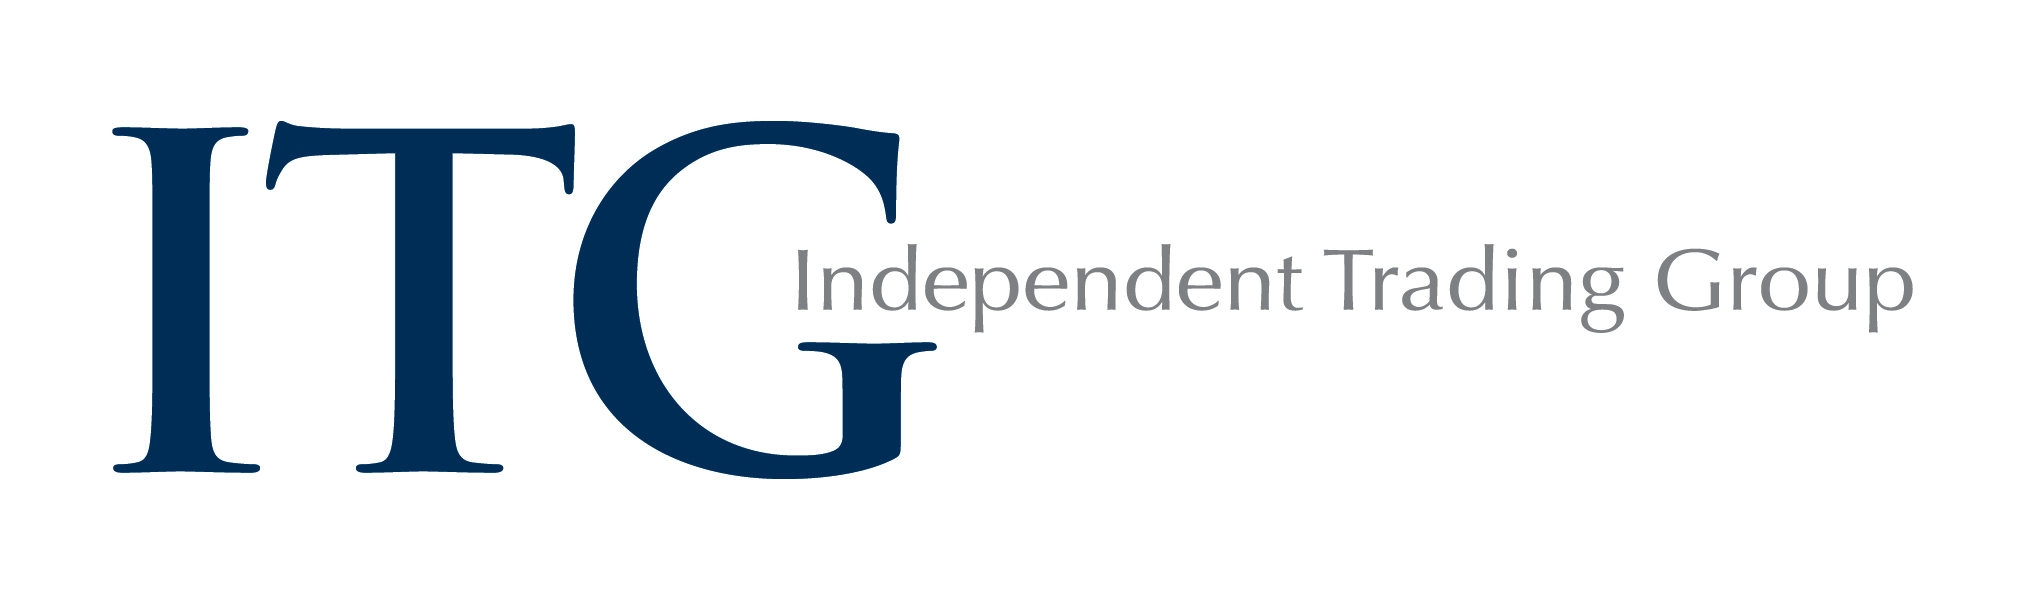 Independent Trading Group